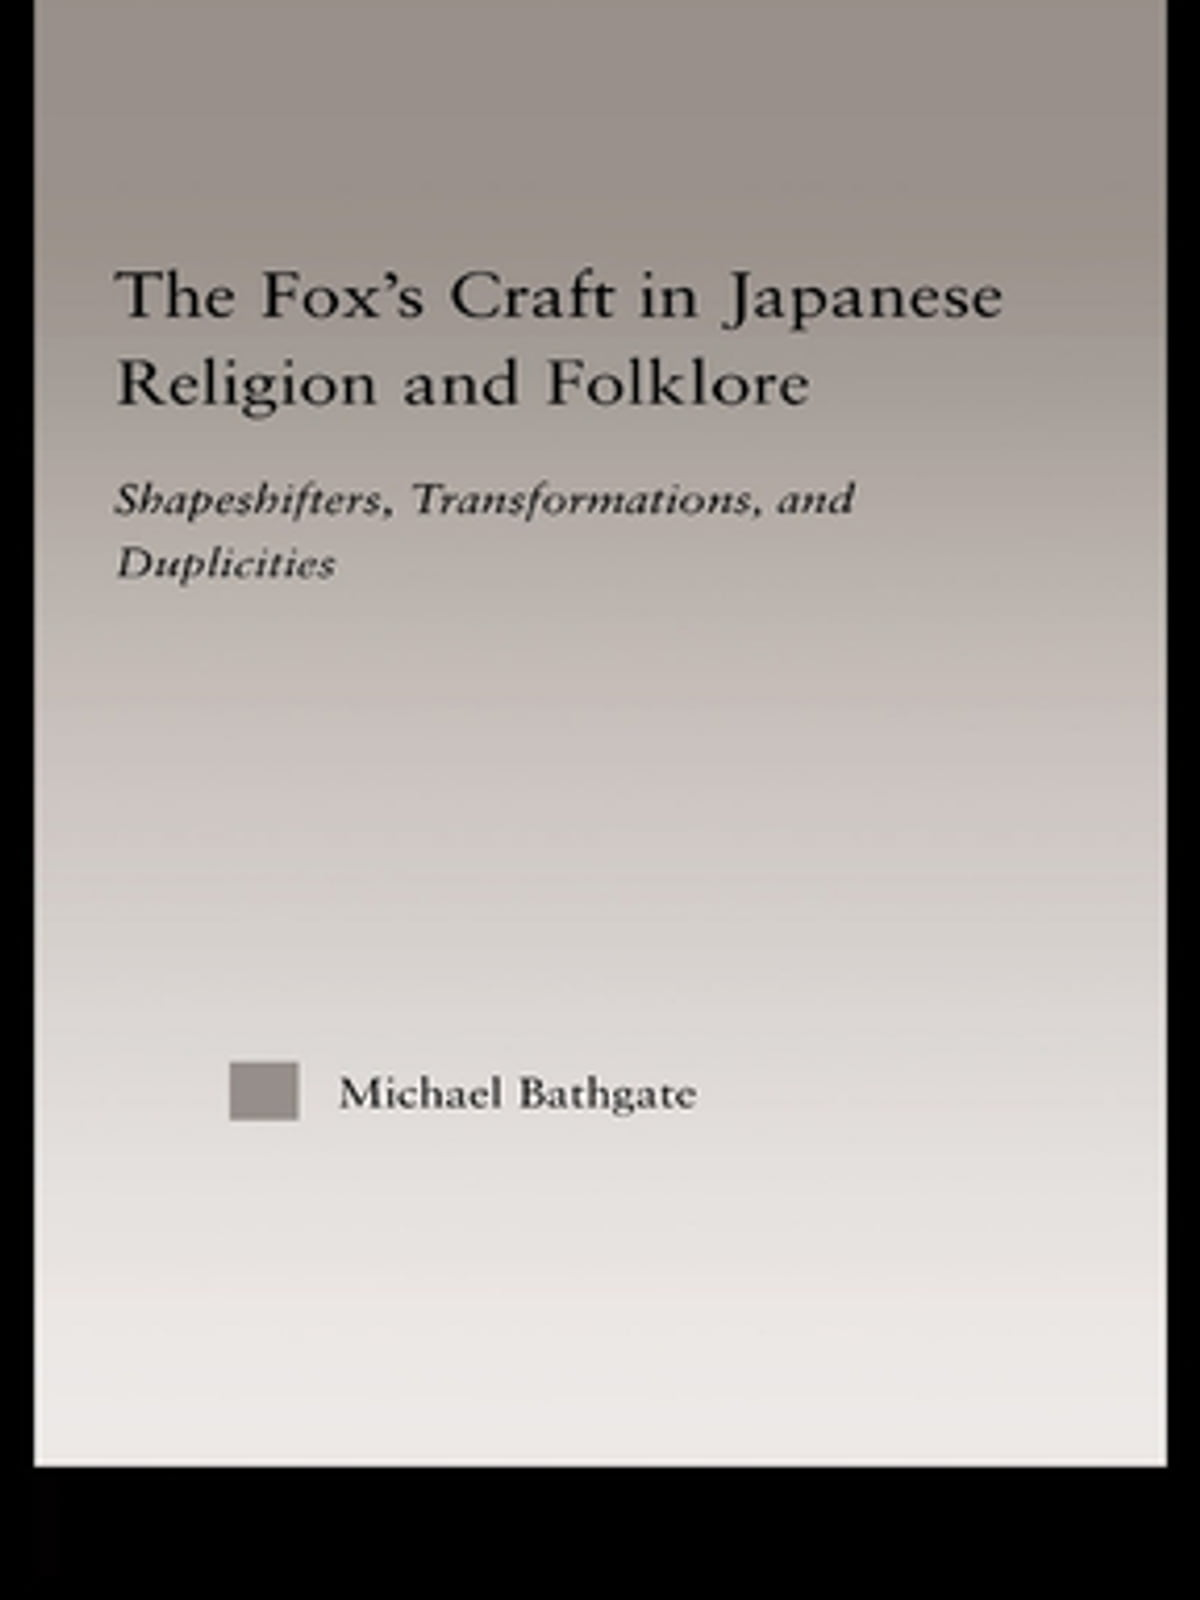 The Fox's Craft in Japanese Religion and Culture ebook by Michael Bathgate  - Rakuten Kobo